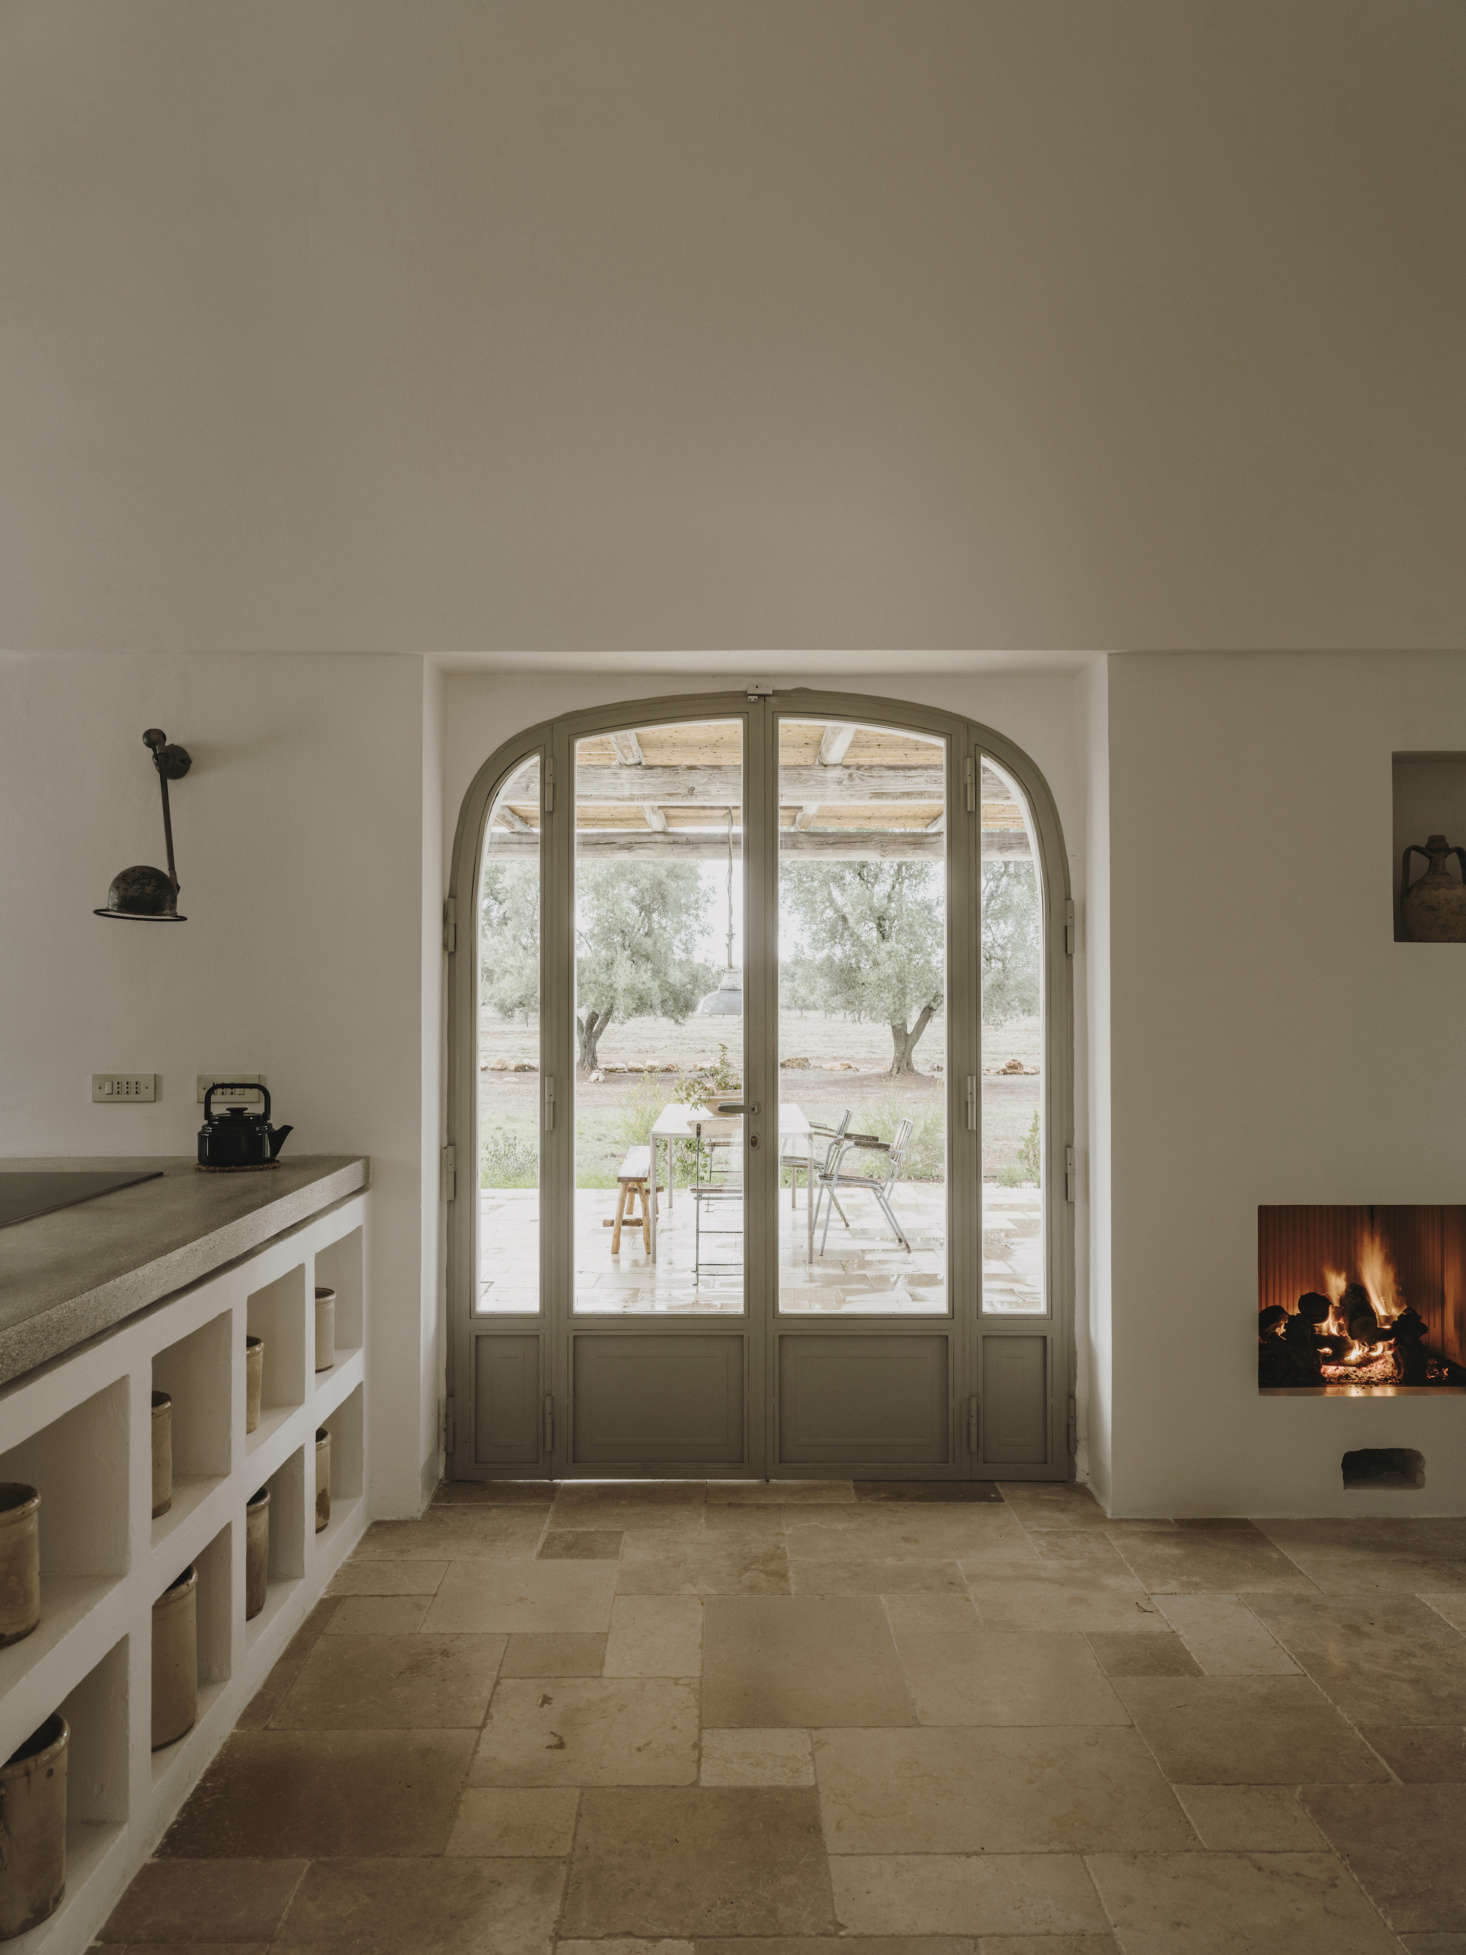 Another arched doorway leads to an outdoor dining area. The inset fireplace was added in the recent renovations.